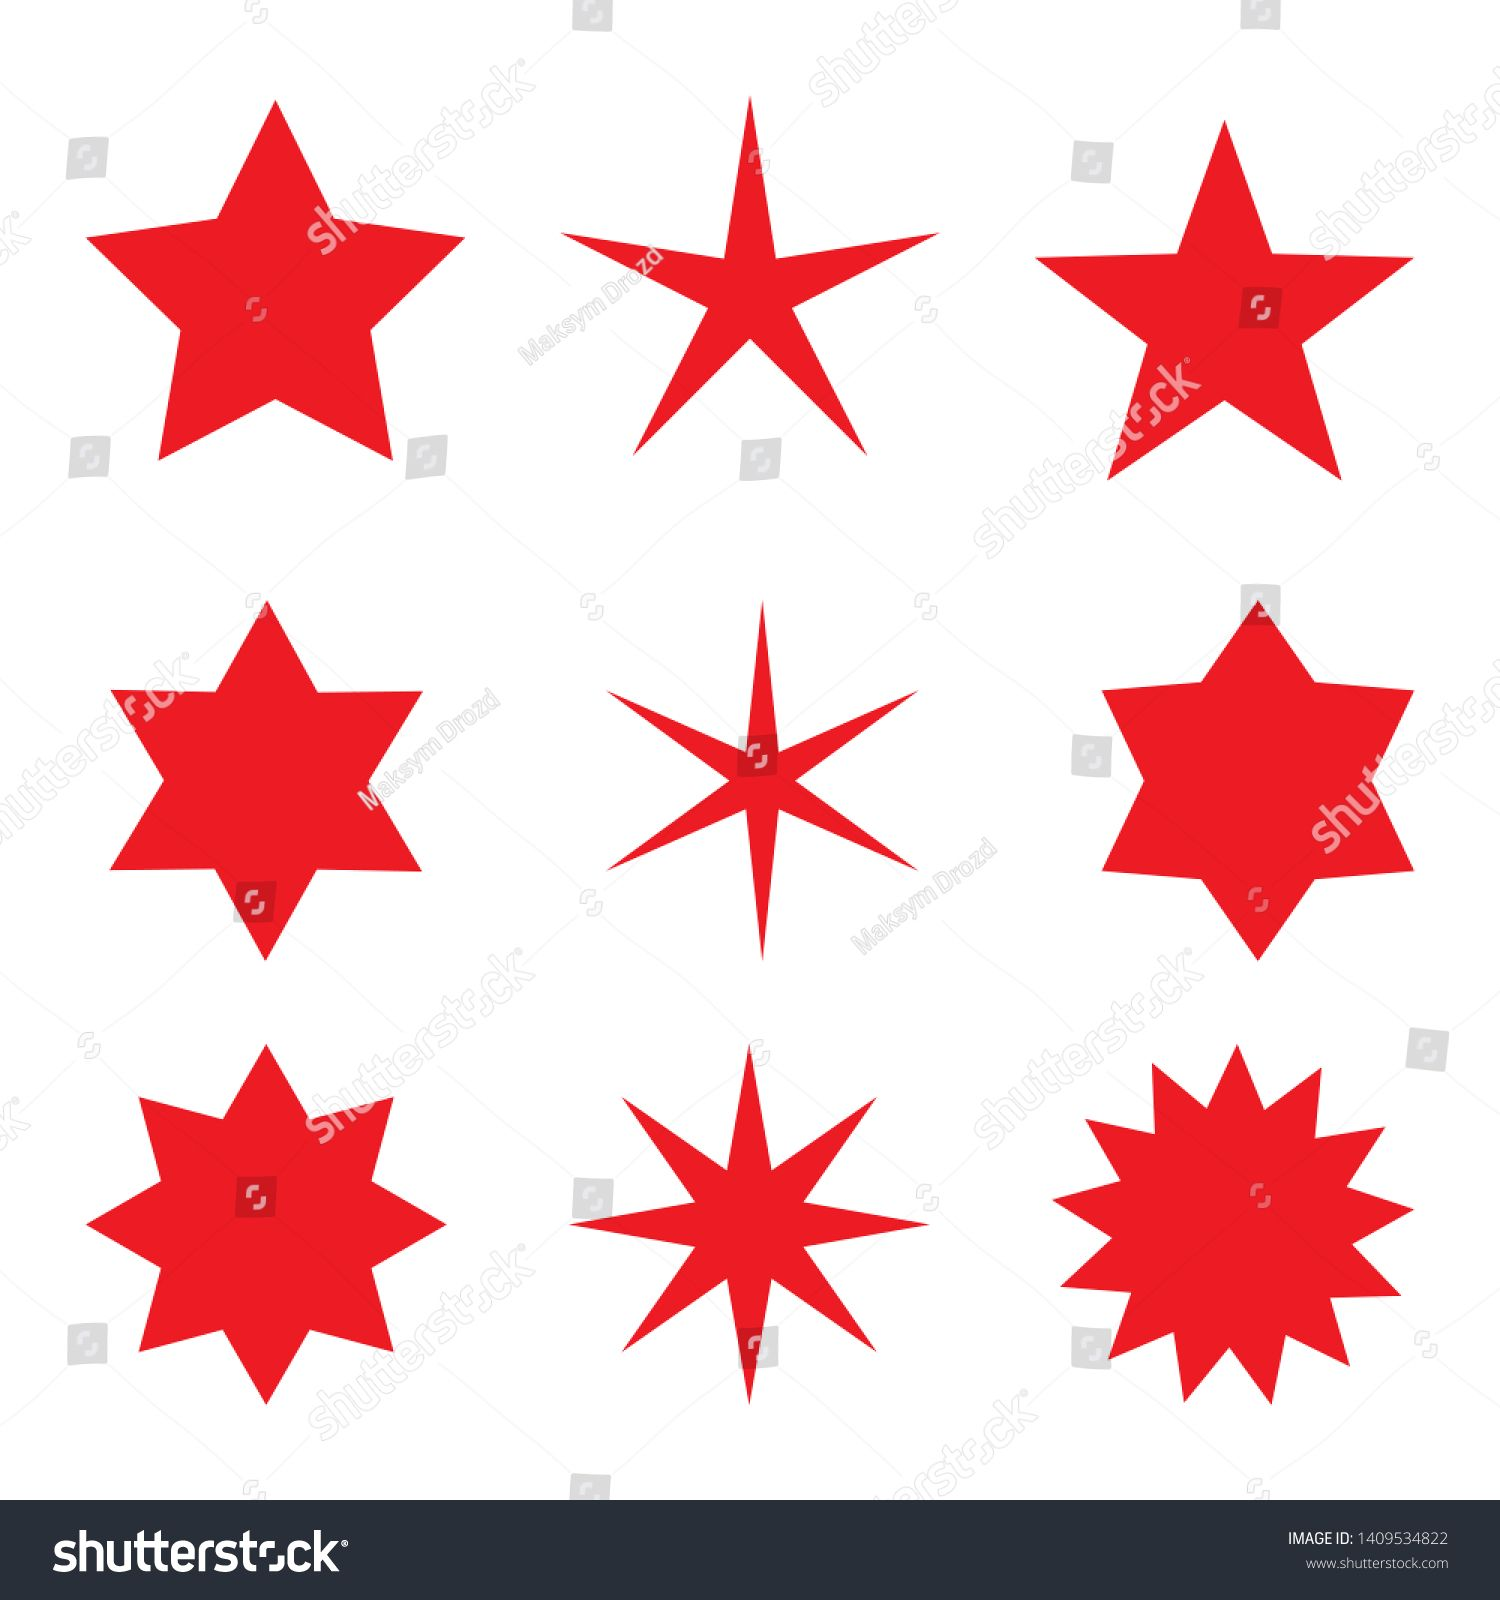 Collection Of Trendy Retro Stars Shapes Sunburst Design Elements Set Bursting Rays Clip Art Red Sparkles Best For Sale Sticker Price Label Quality S En 2020 Madera